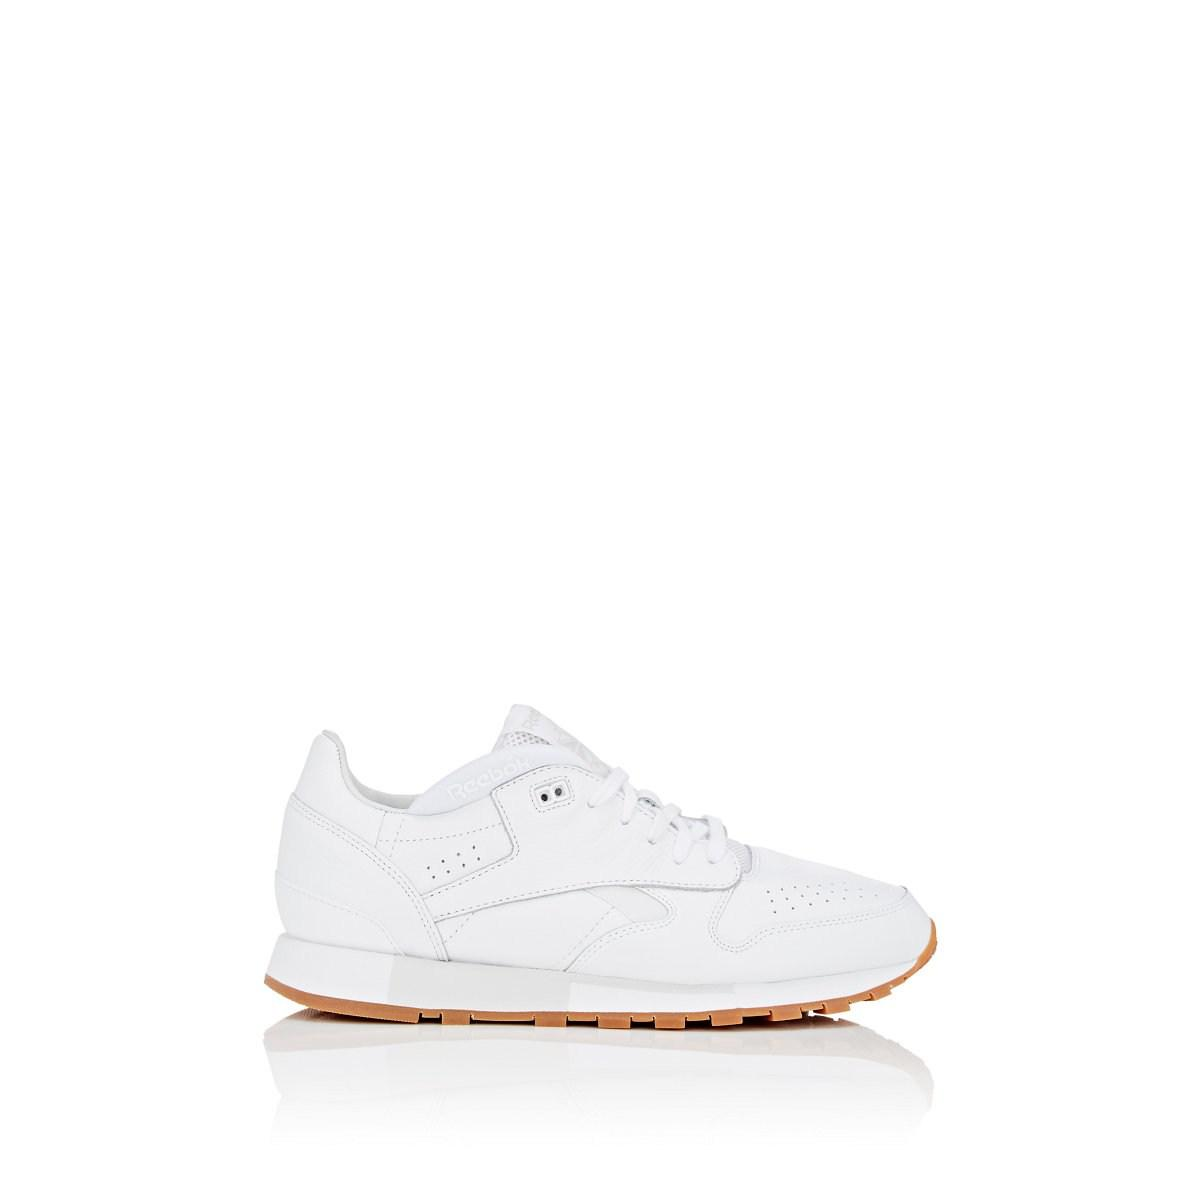 Lyst - Reebok Urge Leather Sneakers in White for Men - Save ... 04d3c3ae9